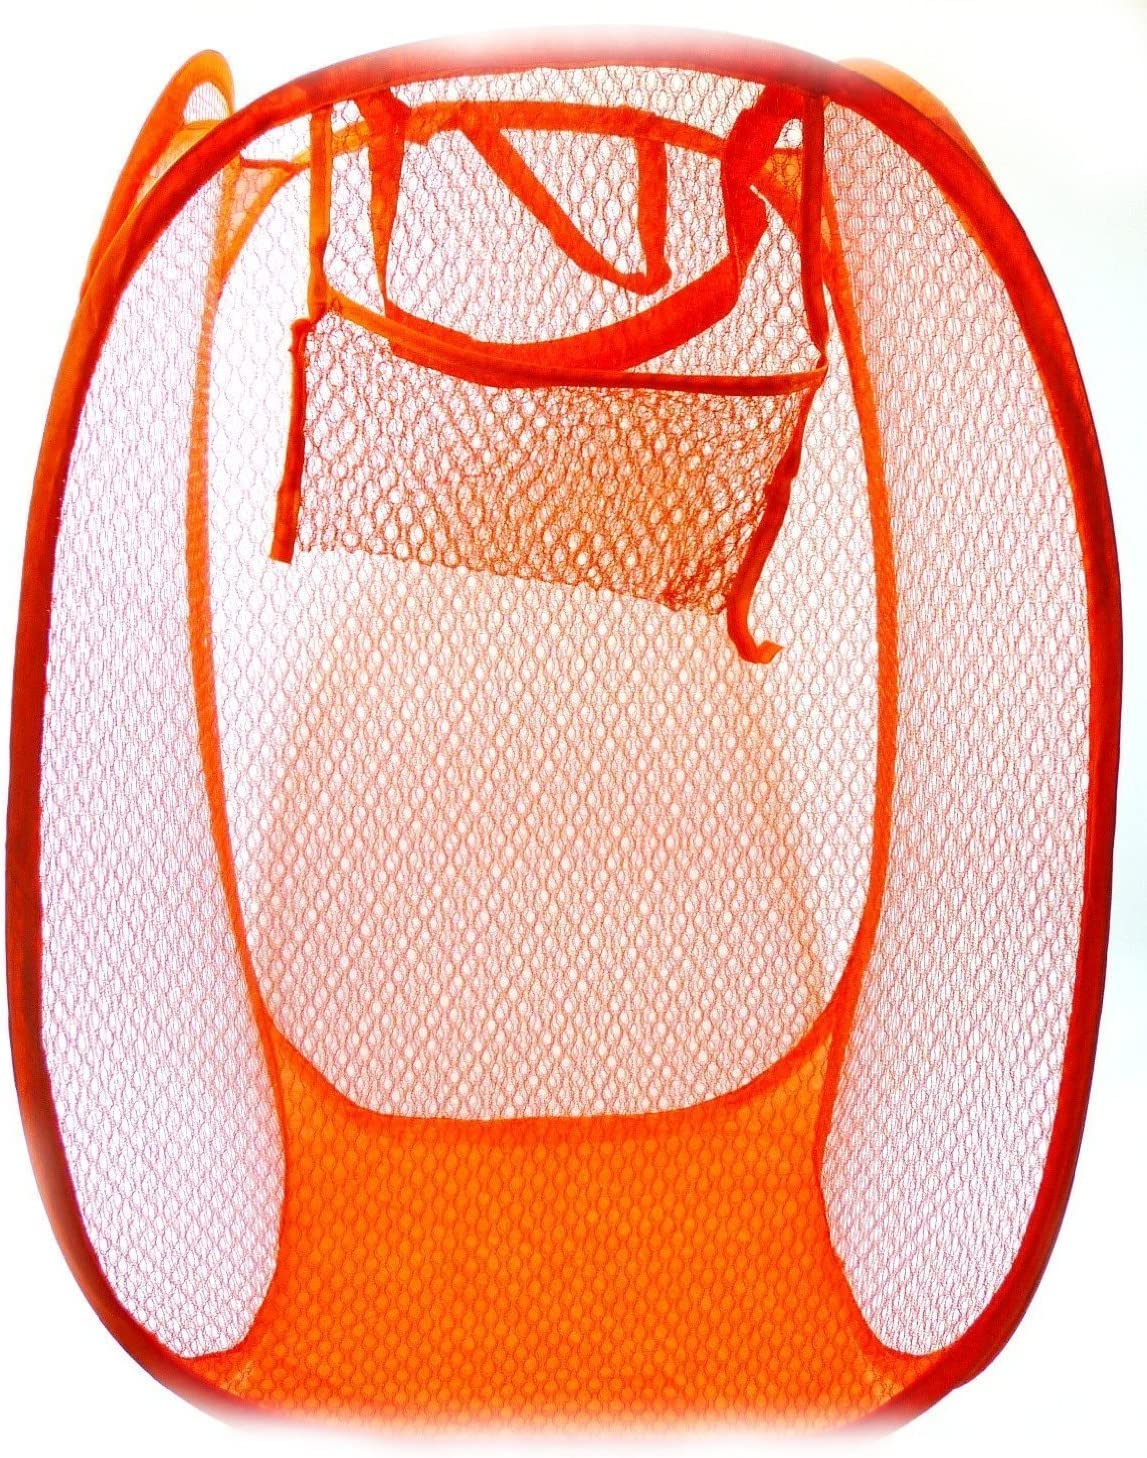 Bajer Deisgn Pop-Open Laundry Hamper